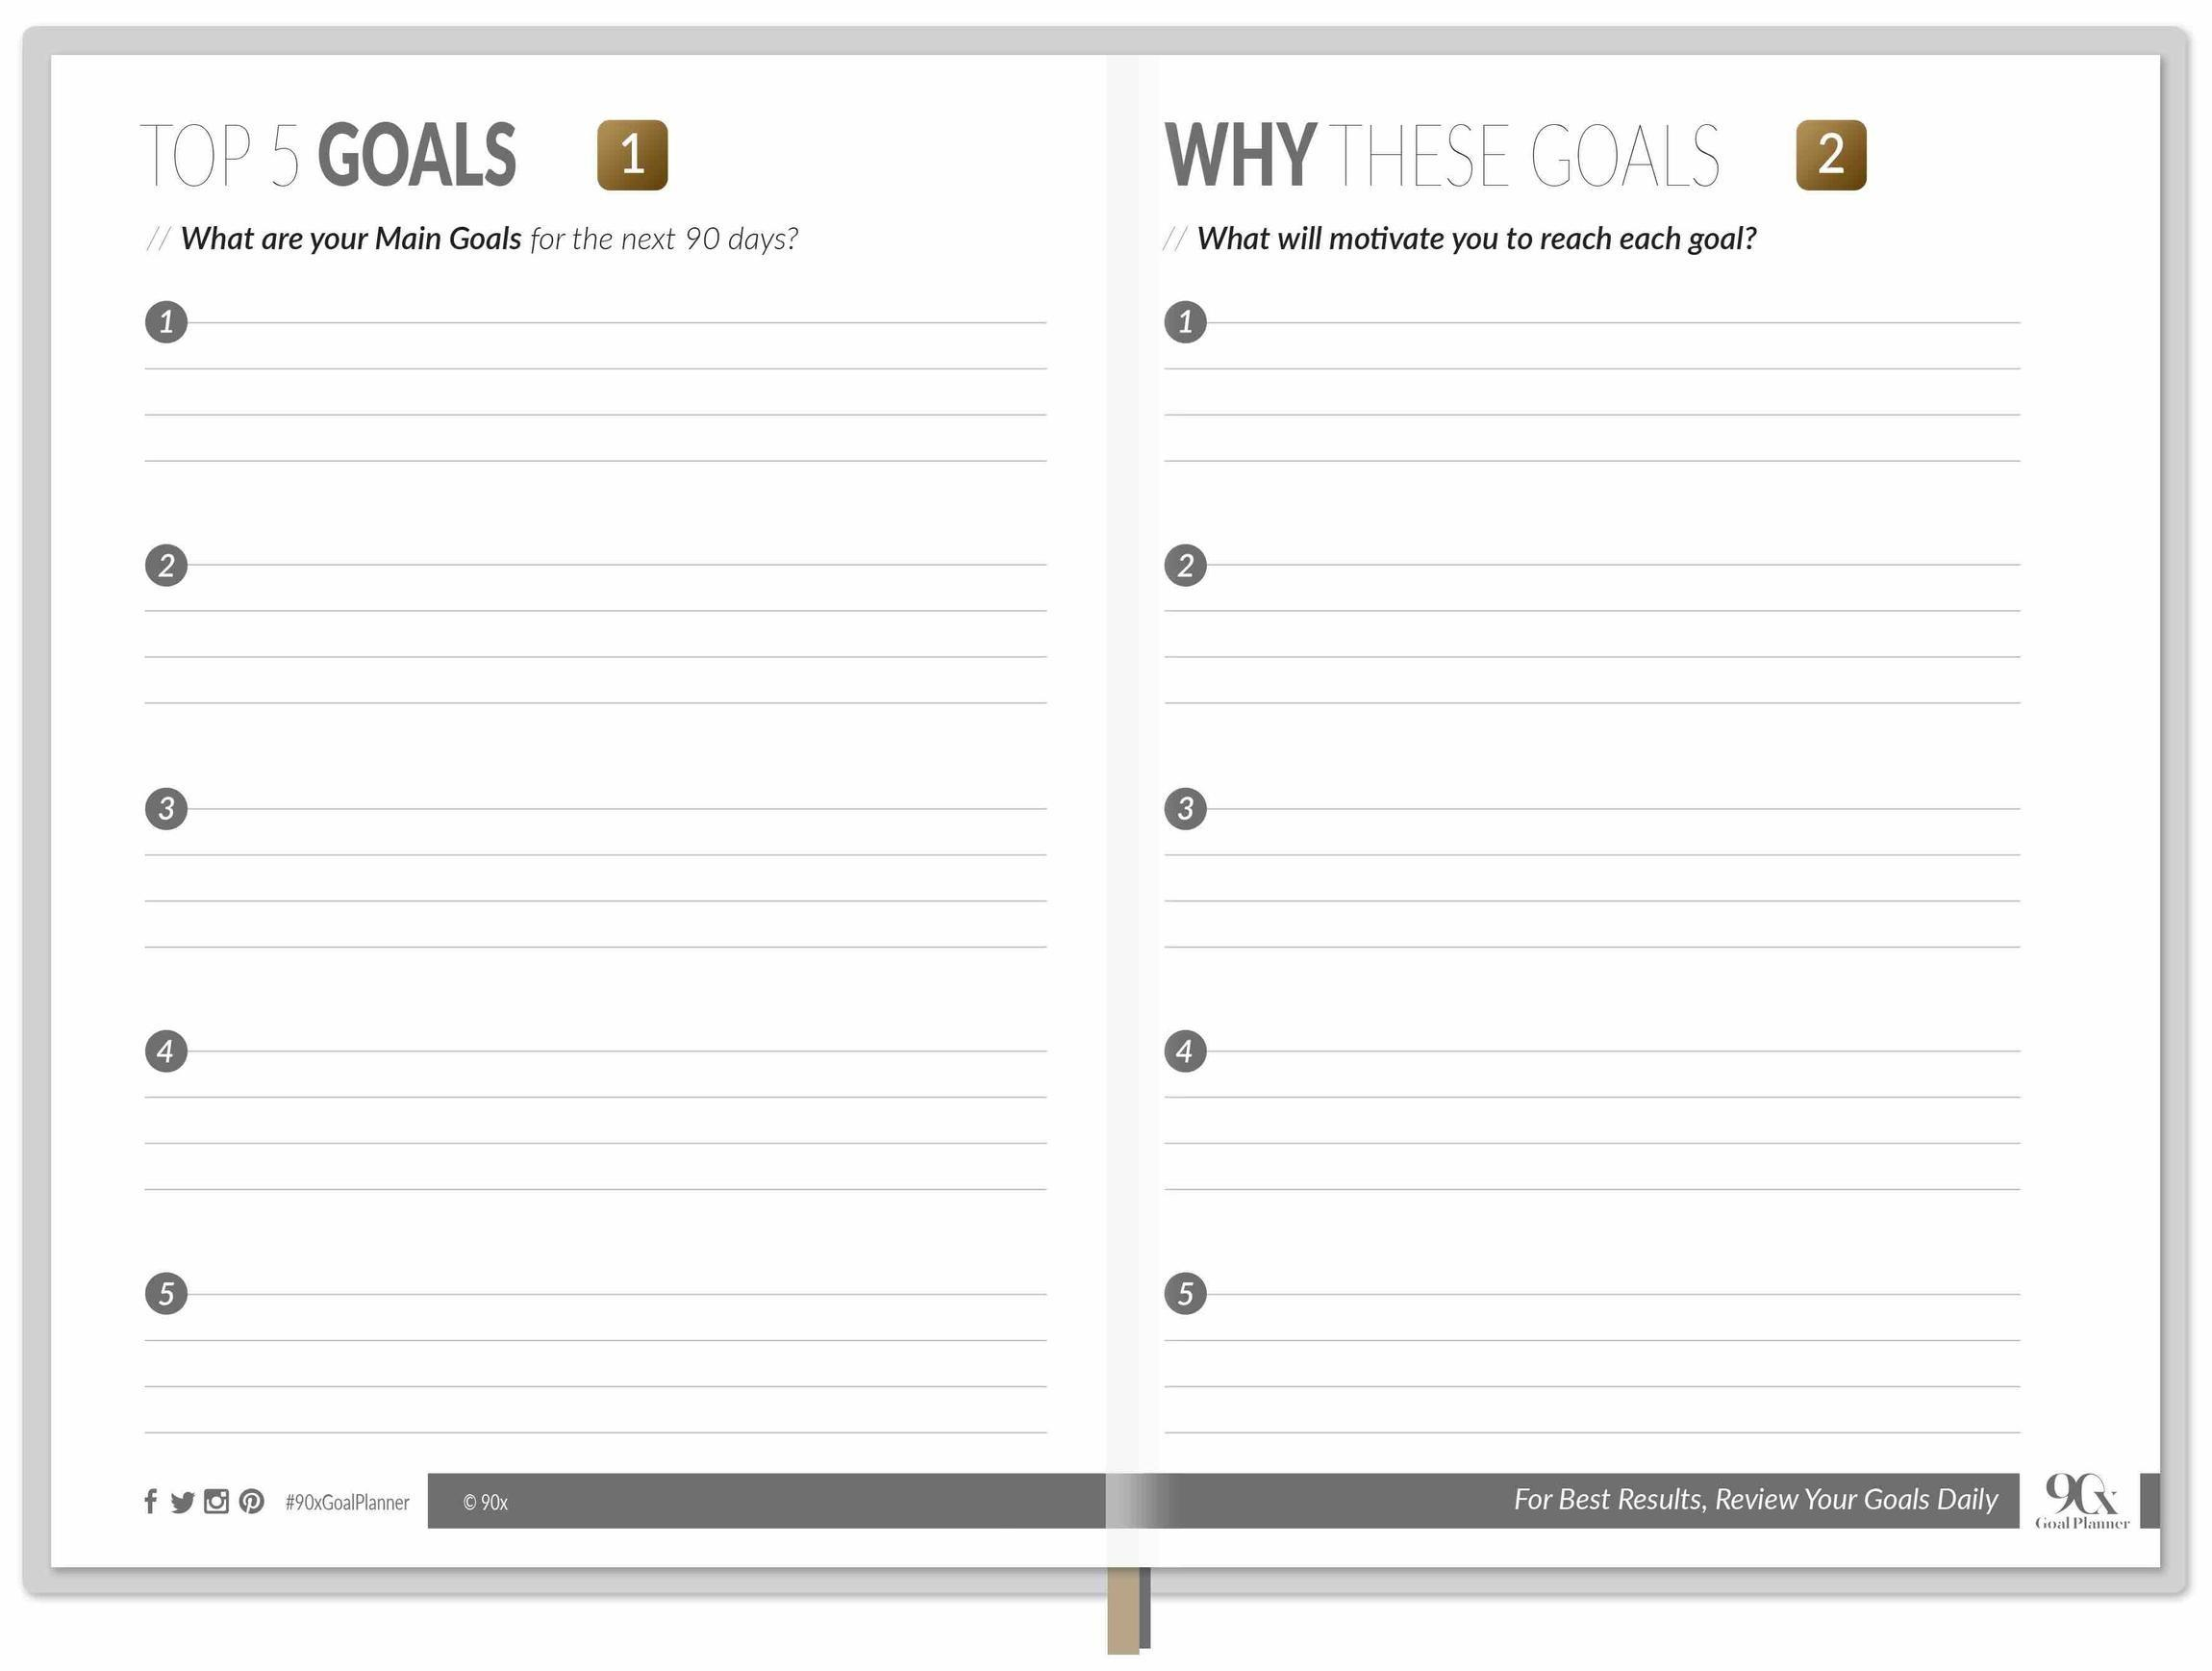 photo about Planner Pdf named 90X Objective PLANNER 1.99 PDF